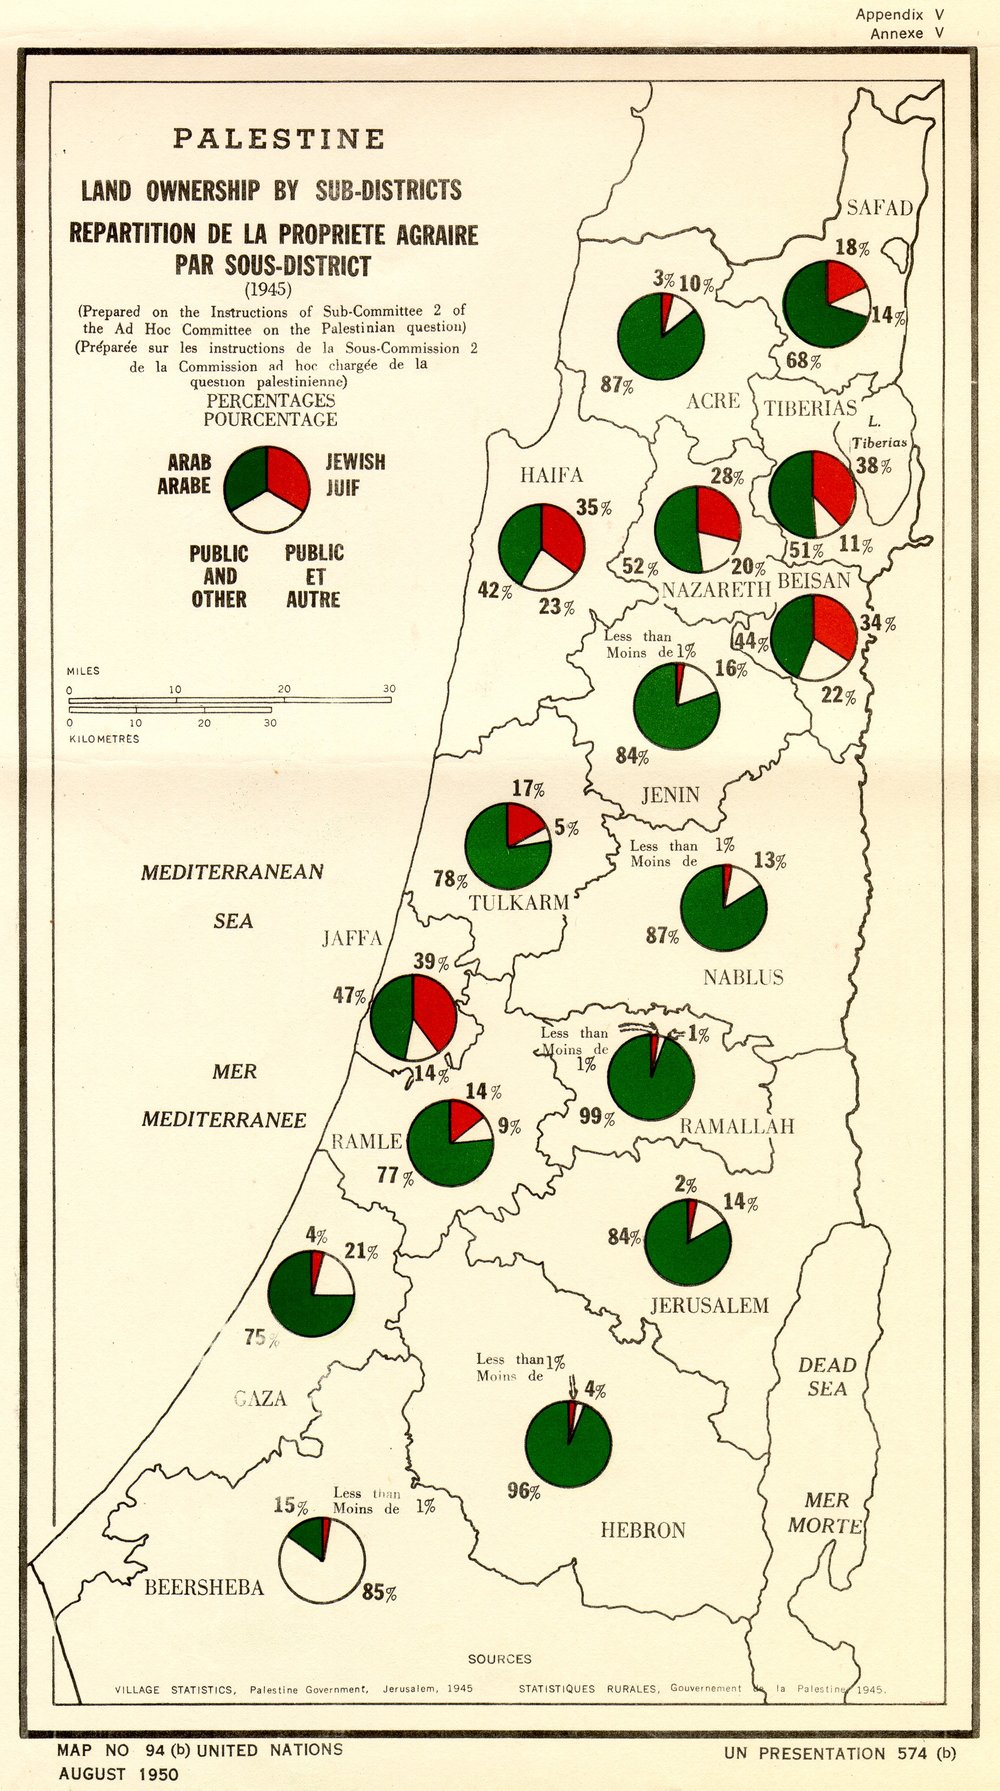 Palestine_Land_ownership_by_sub-district_(1945).jpg